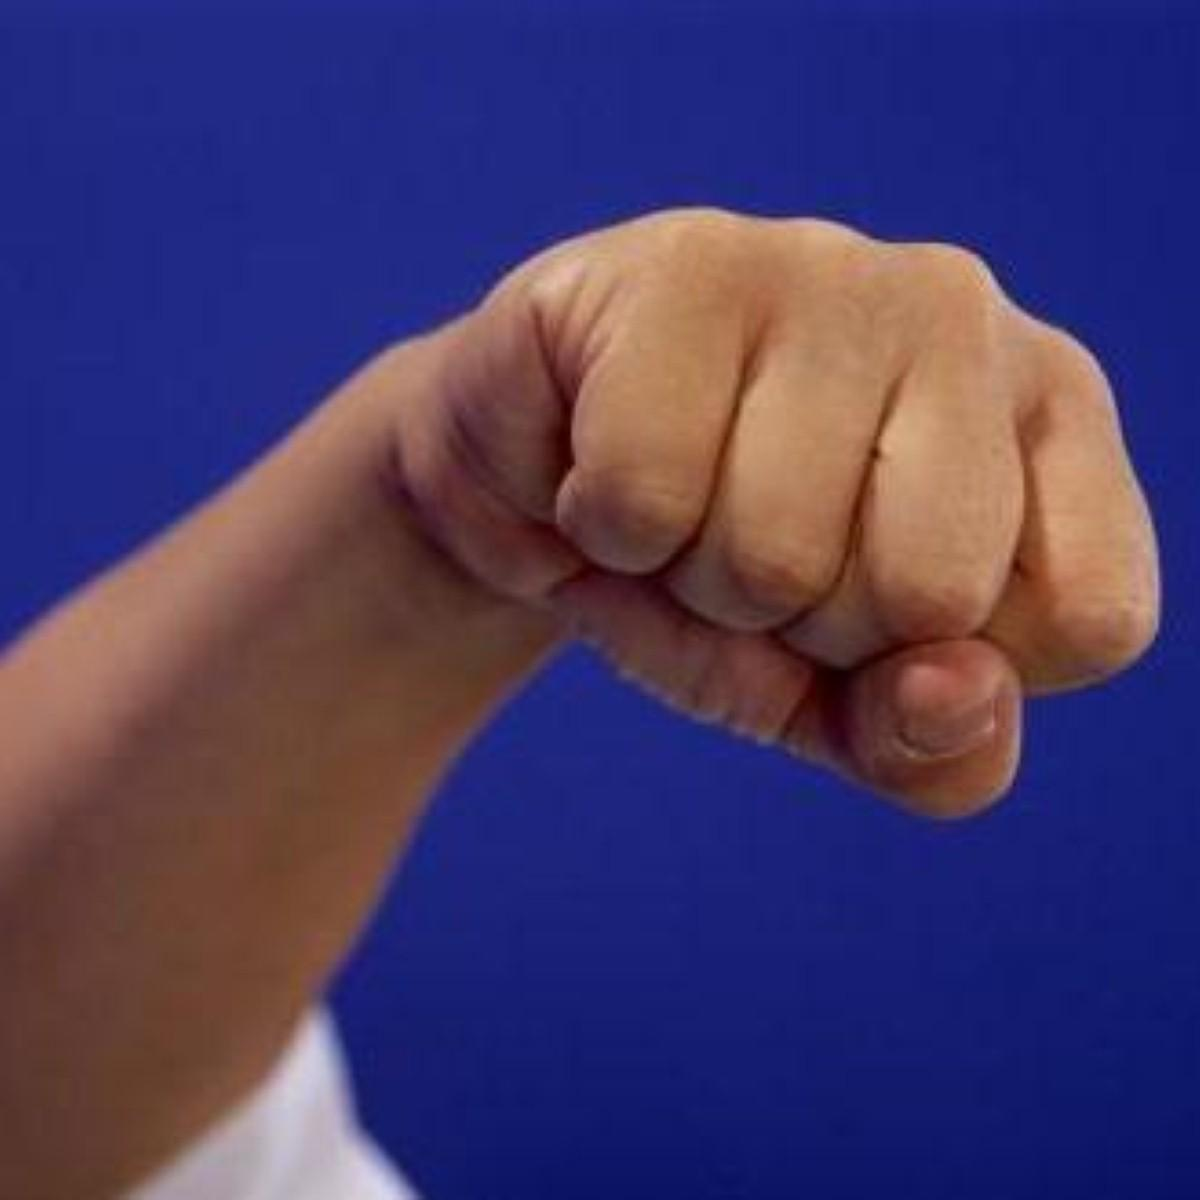 Clenching fists boosts memory